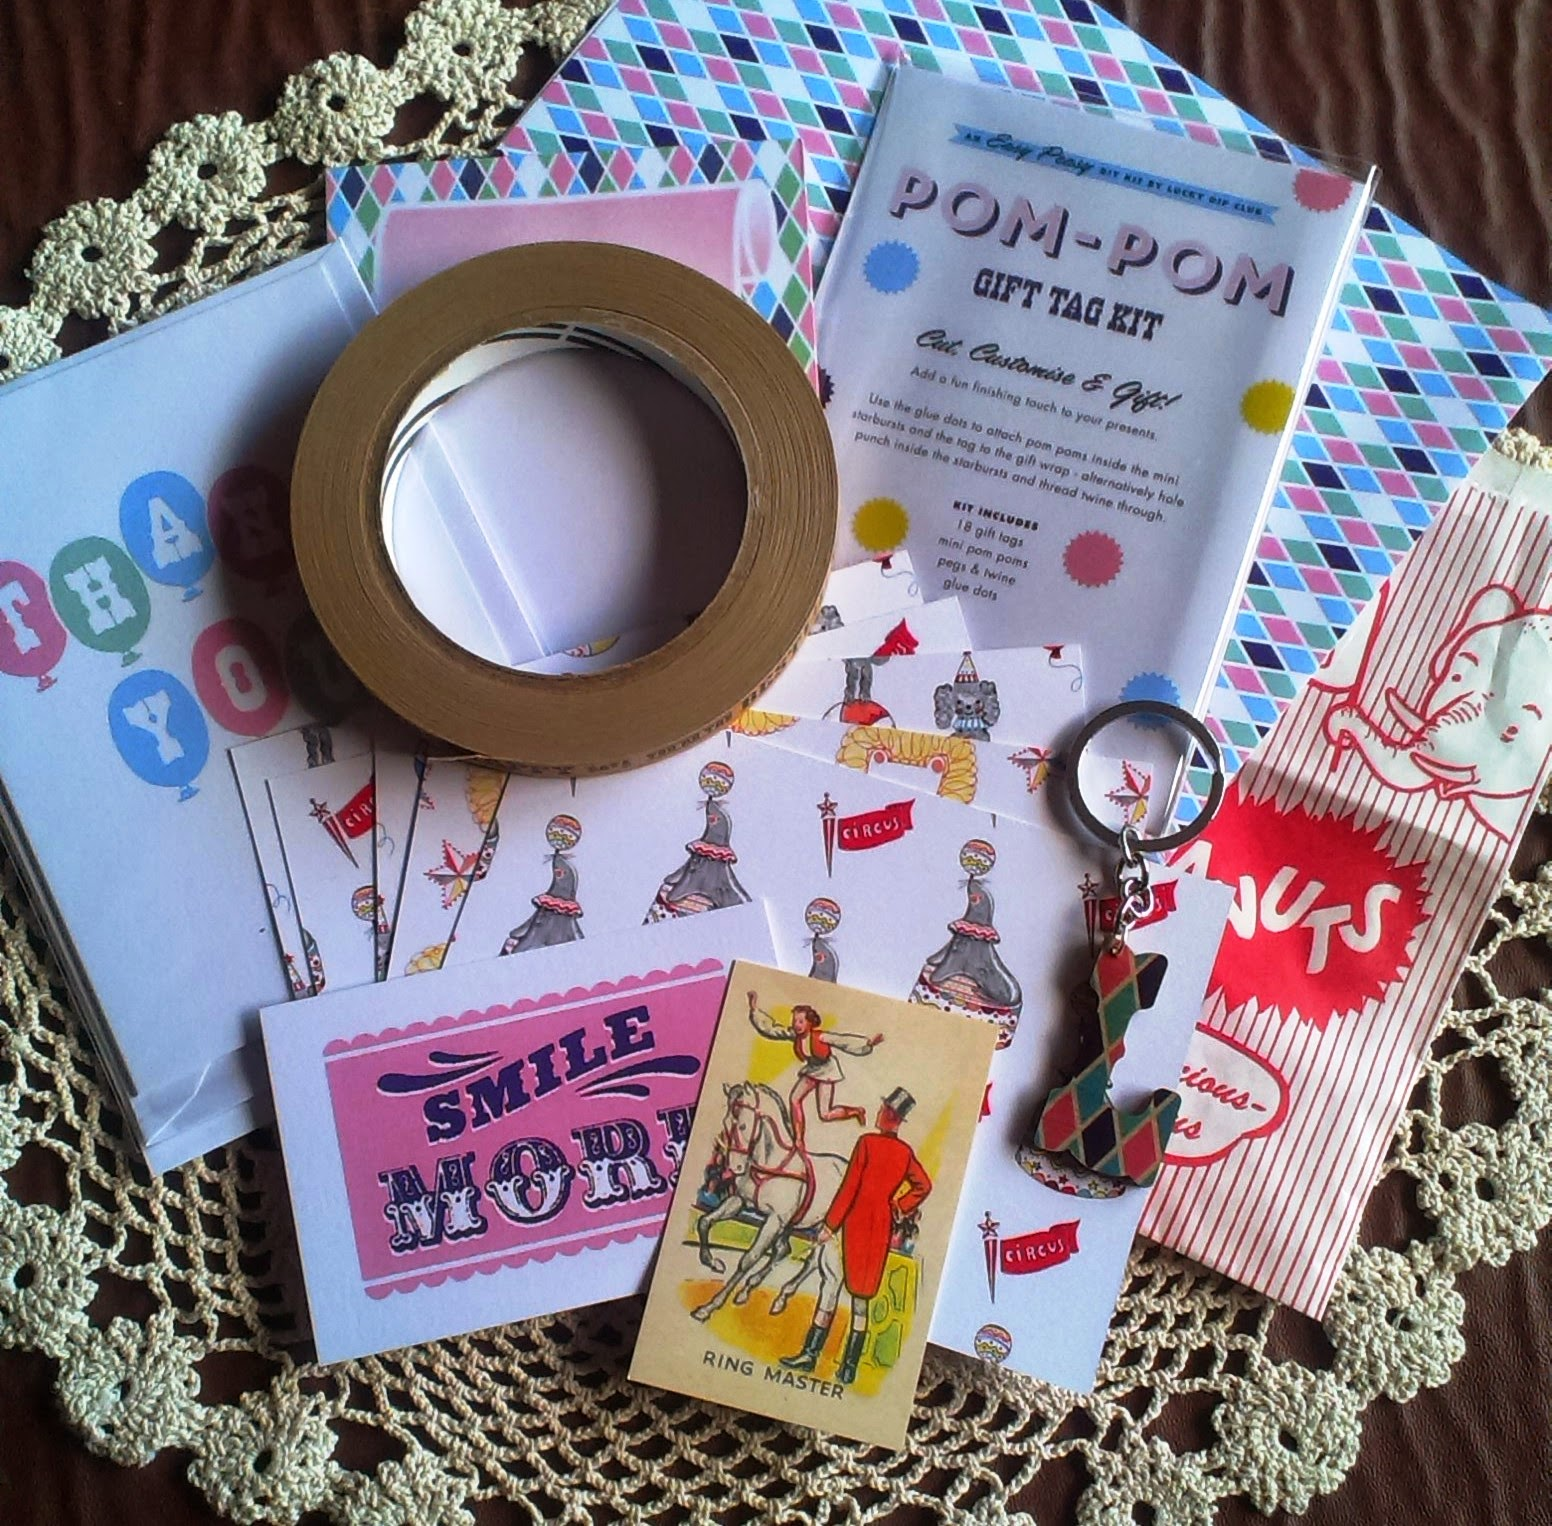 Lucky Dip Club November 2014 Box